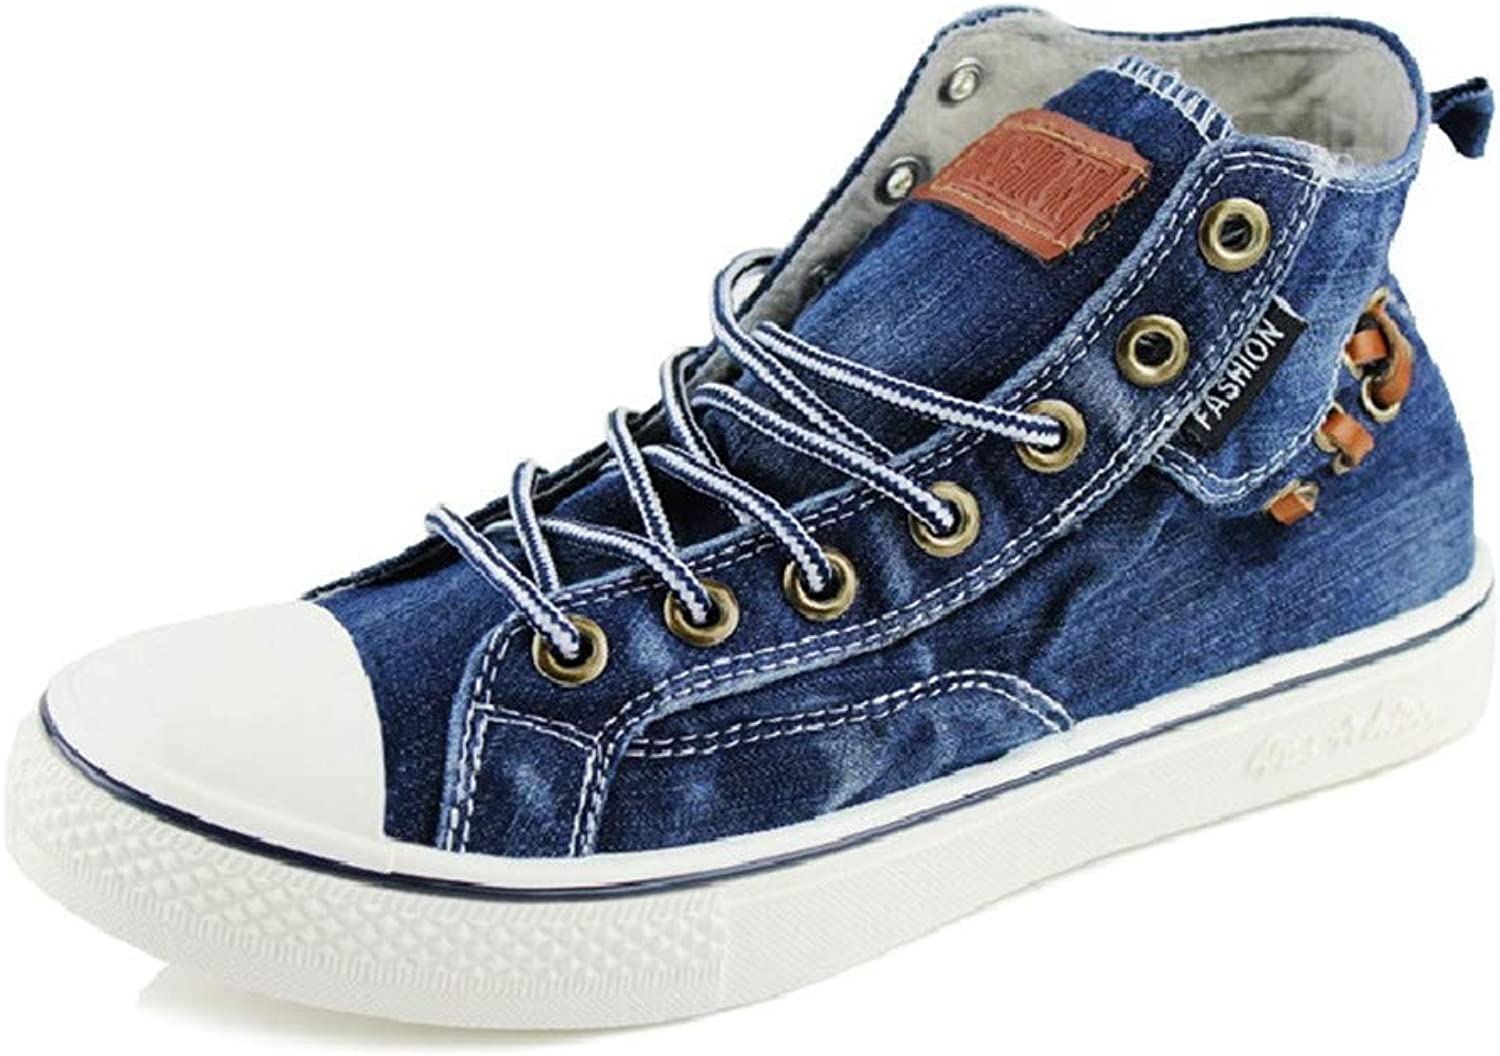 Fashion Women High Top Canvas Sneakers Women's Denim Ankle Lace Up Ladies Ankle Canvas shoes Woman